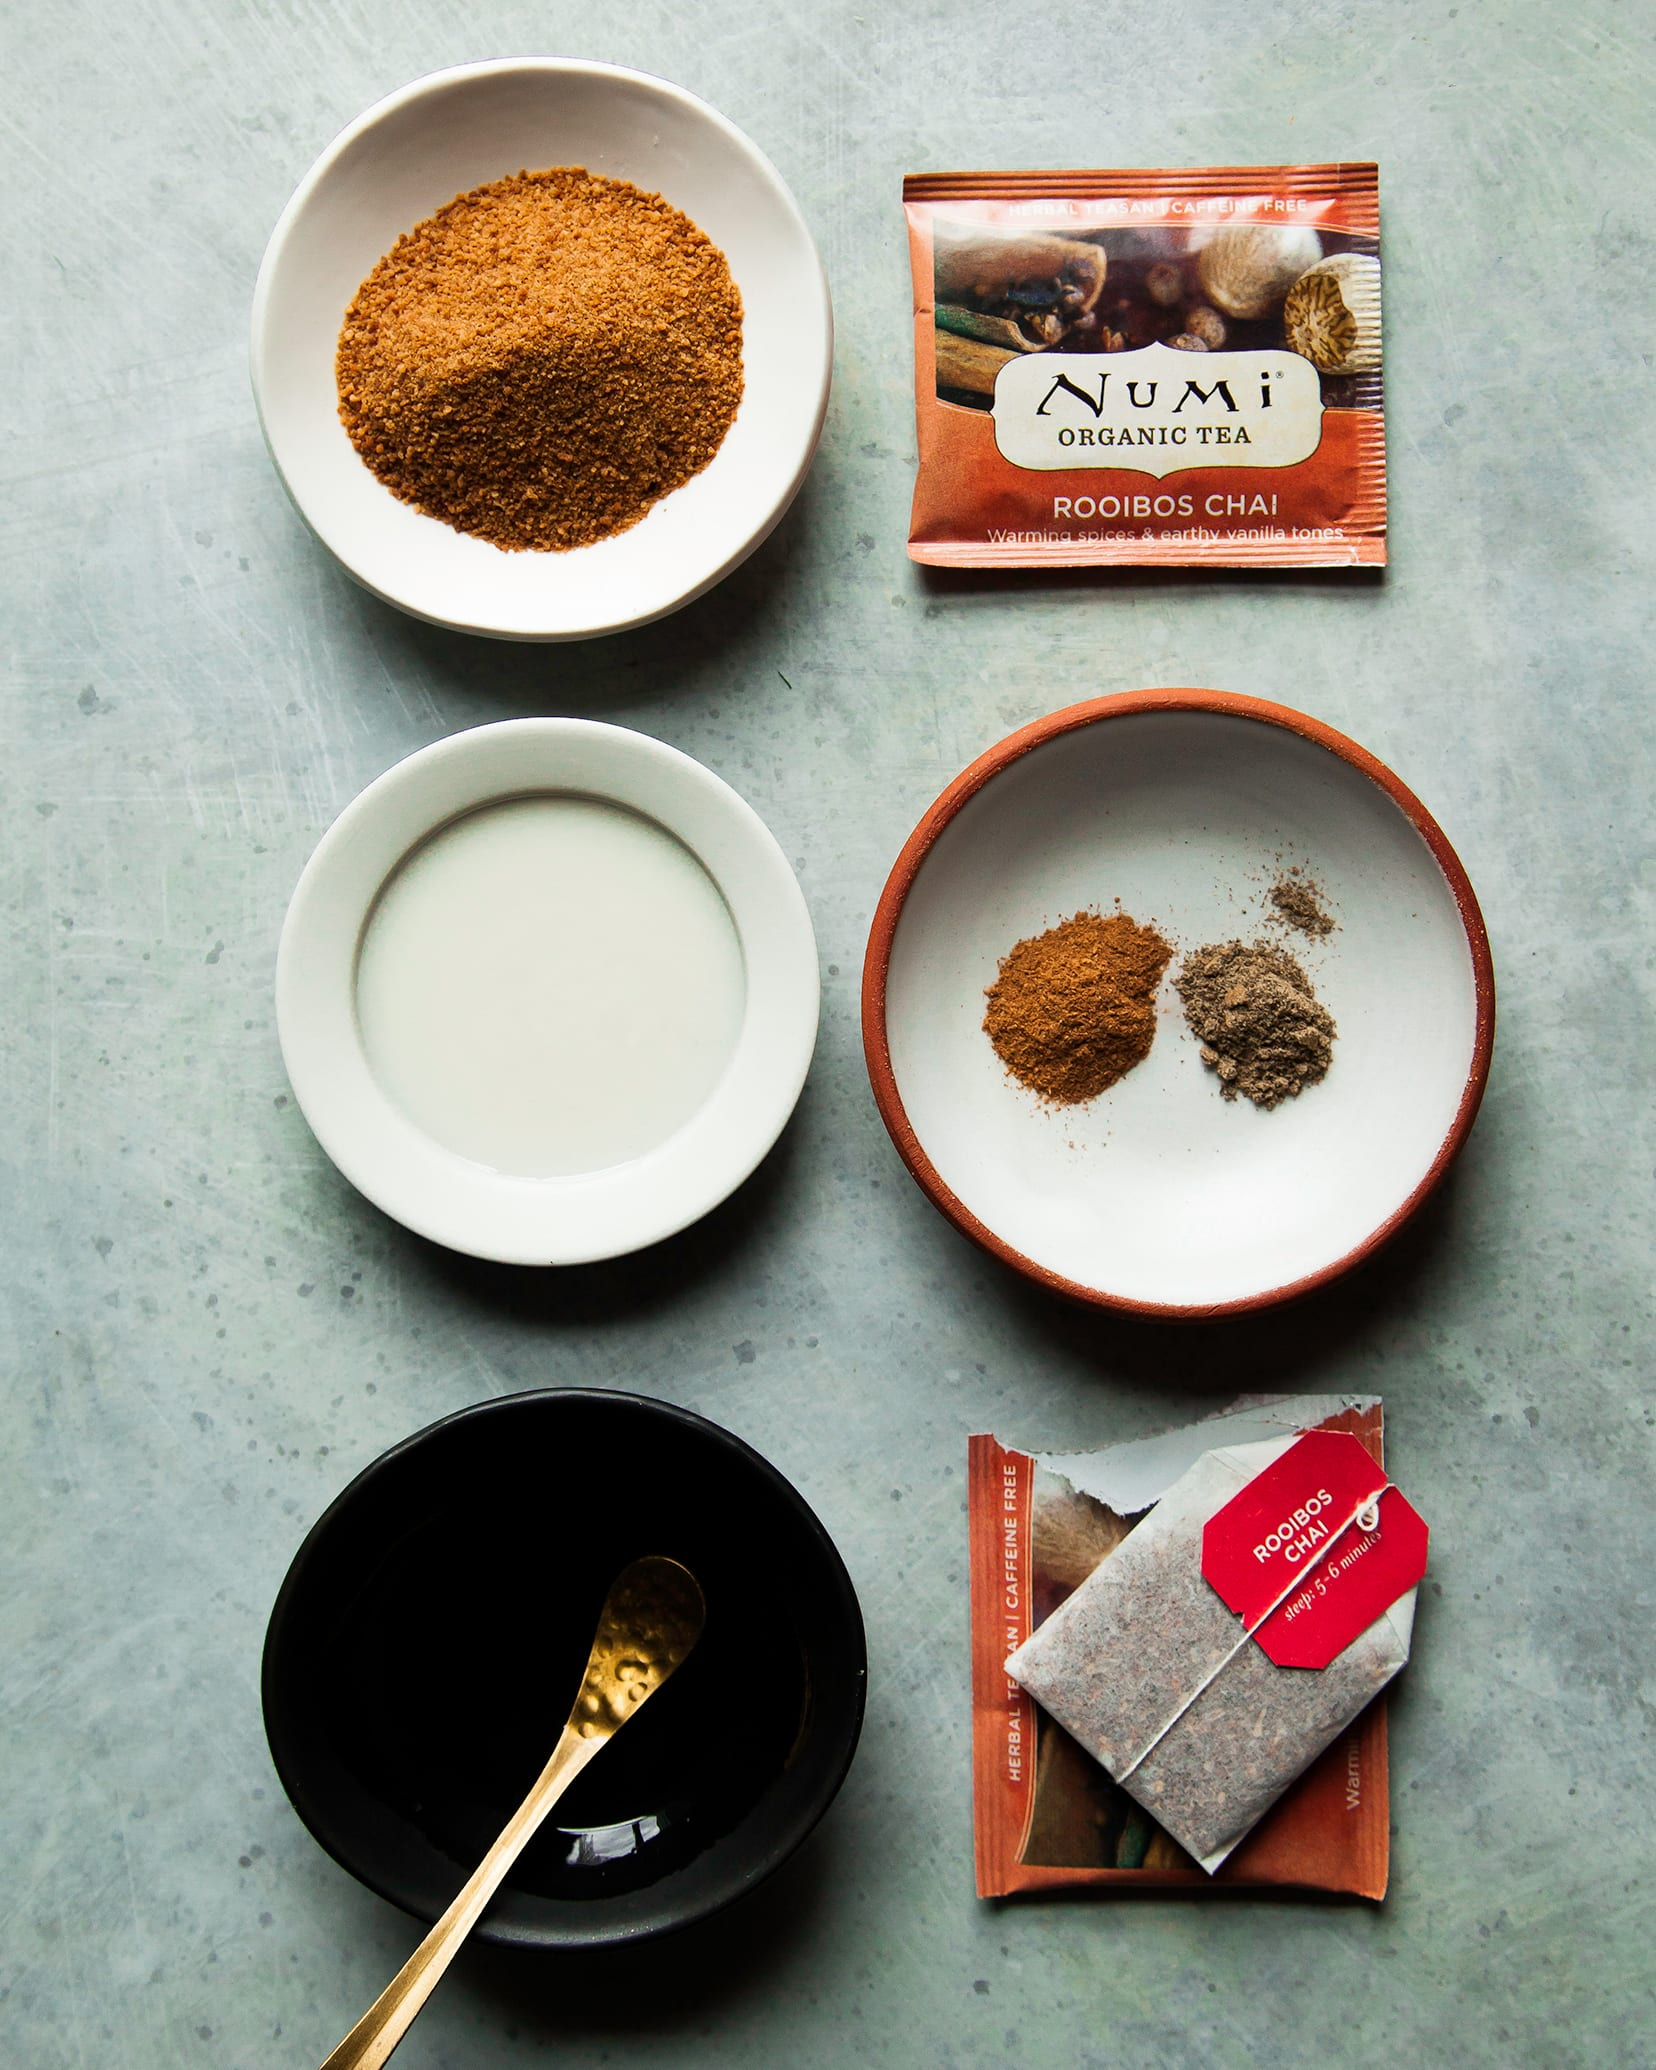 Overhead shot of ingredients for a tea latte.